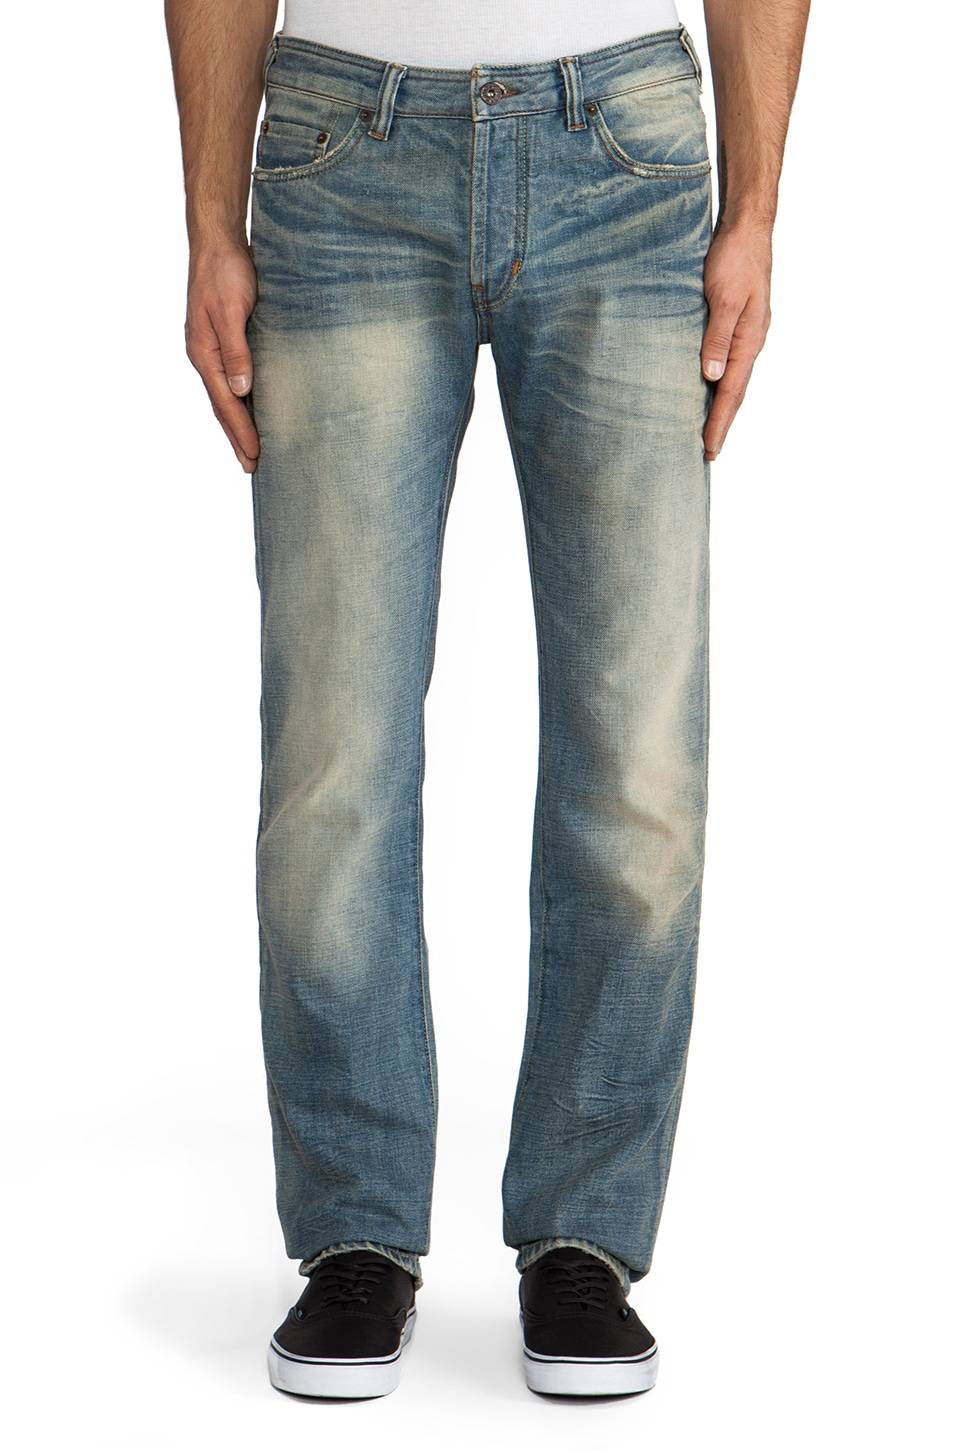 Natural Selection Denim Smith Straight in Gamma